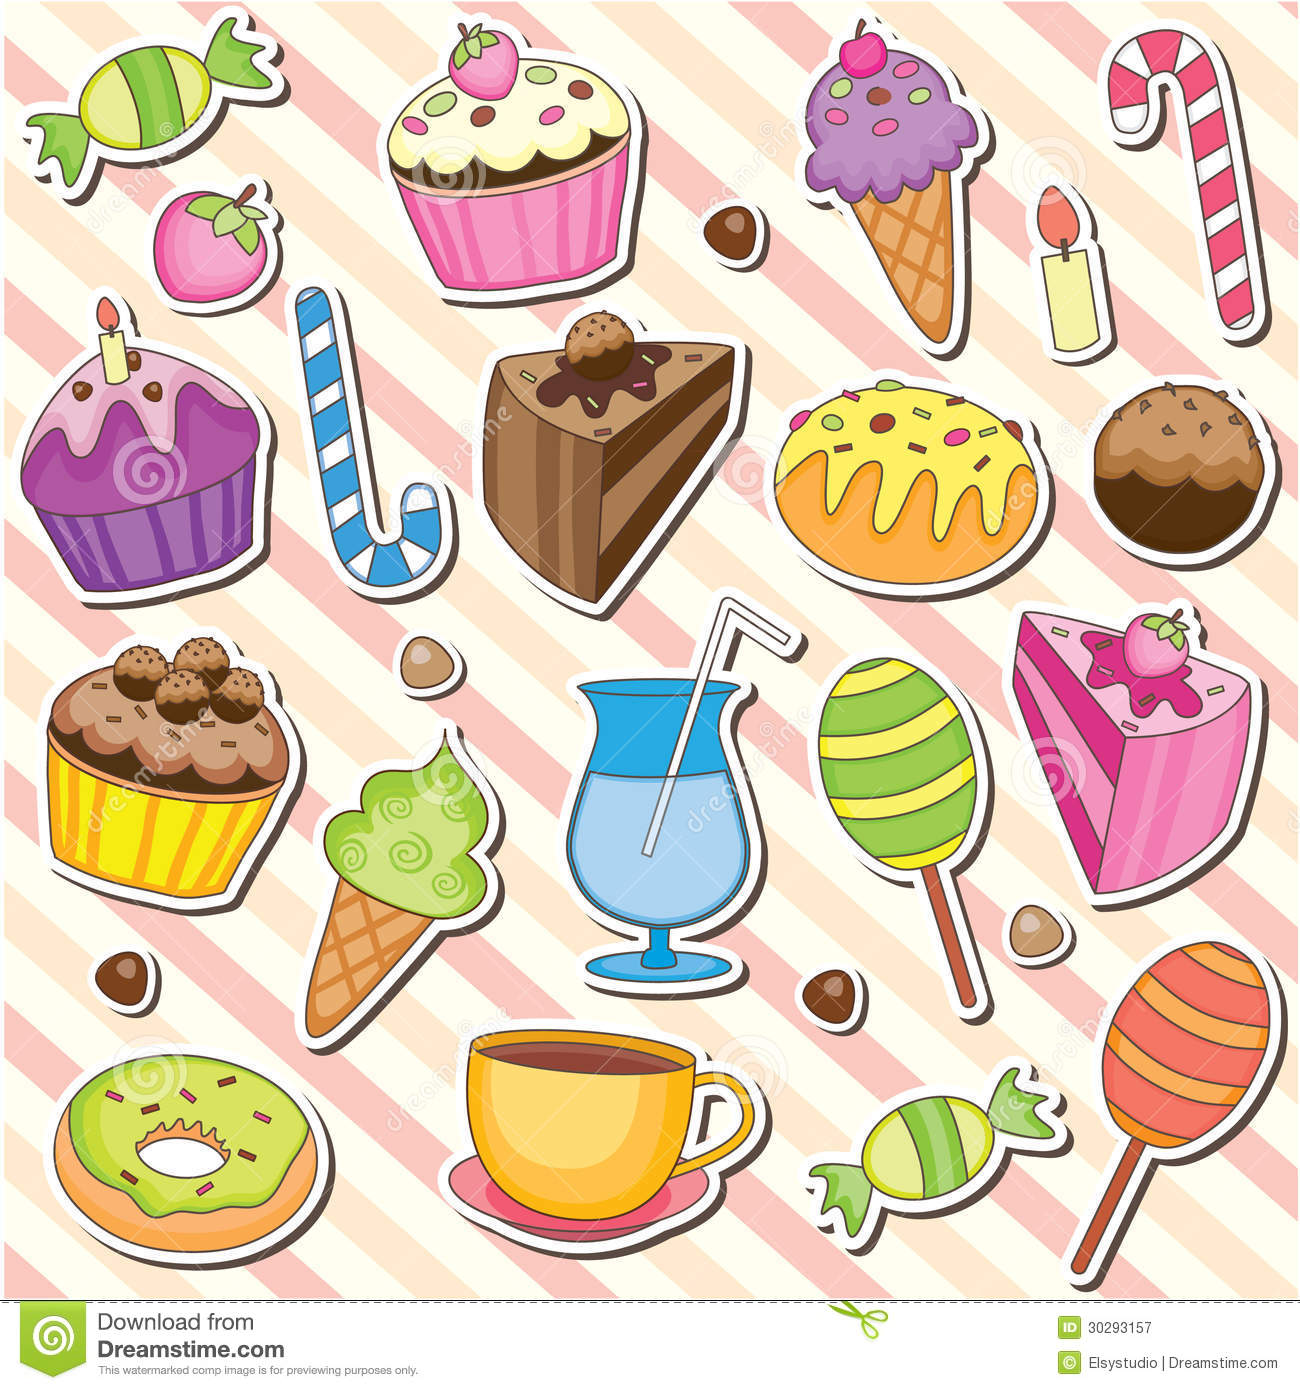 Dessert Clip Art Free Clipart Panda Free Clipart Images within The Incredible  free clip art desserts intended for your reference